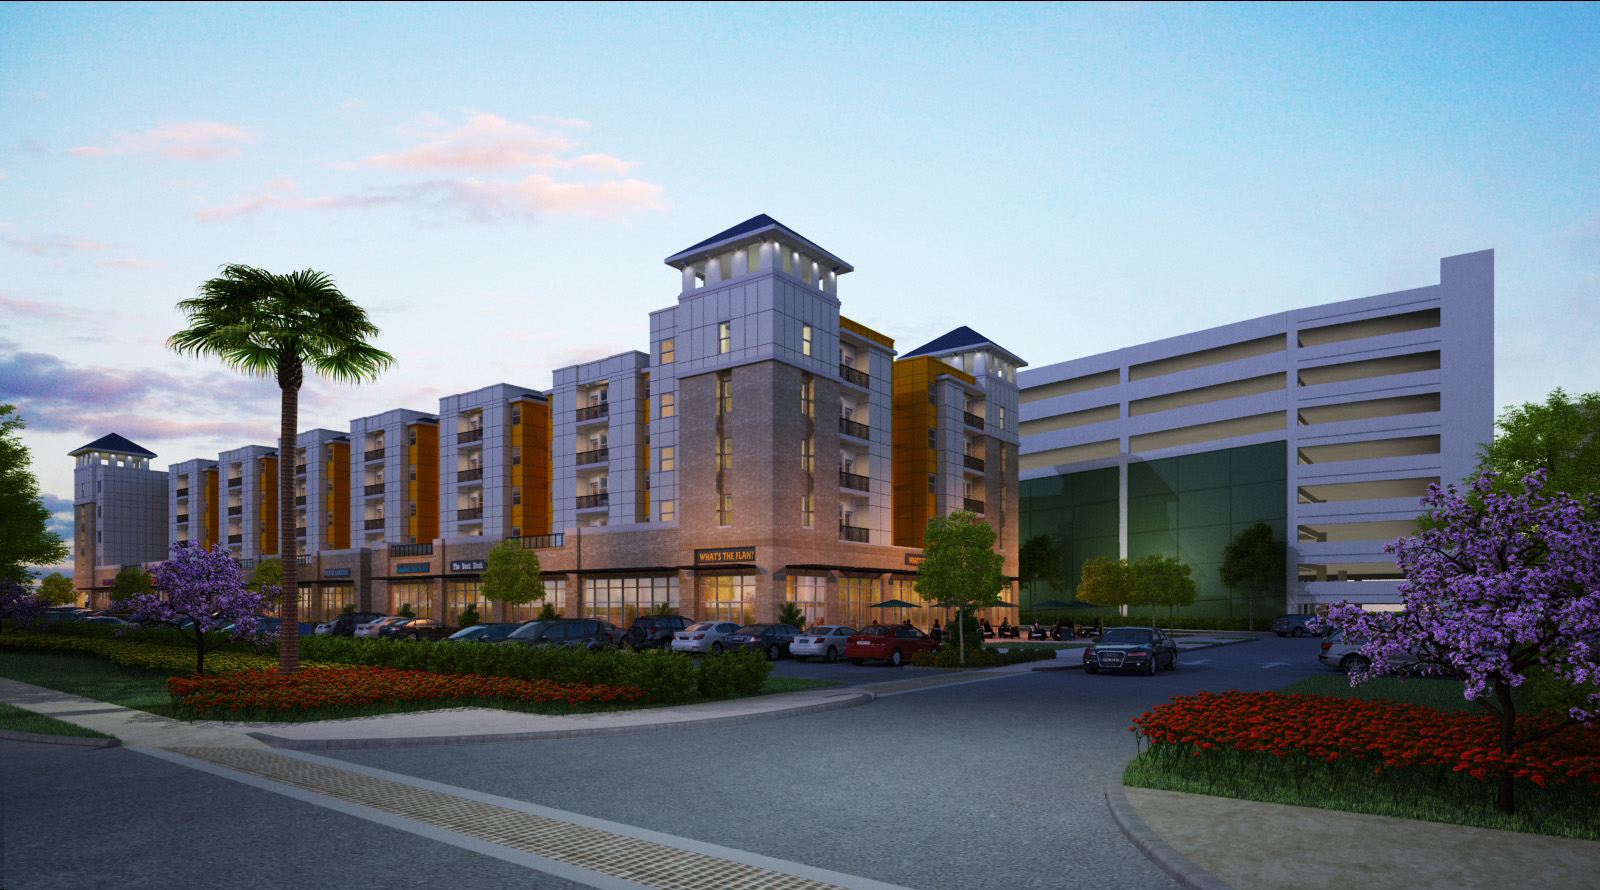 Ucf S New Plaza See Pictures Of Planned Apartments Retail